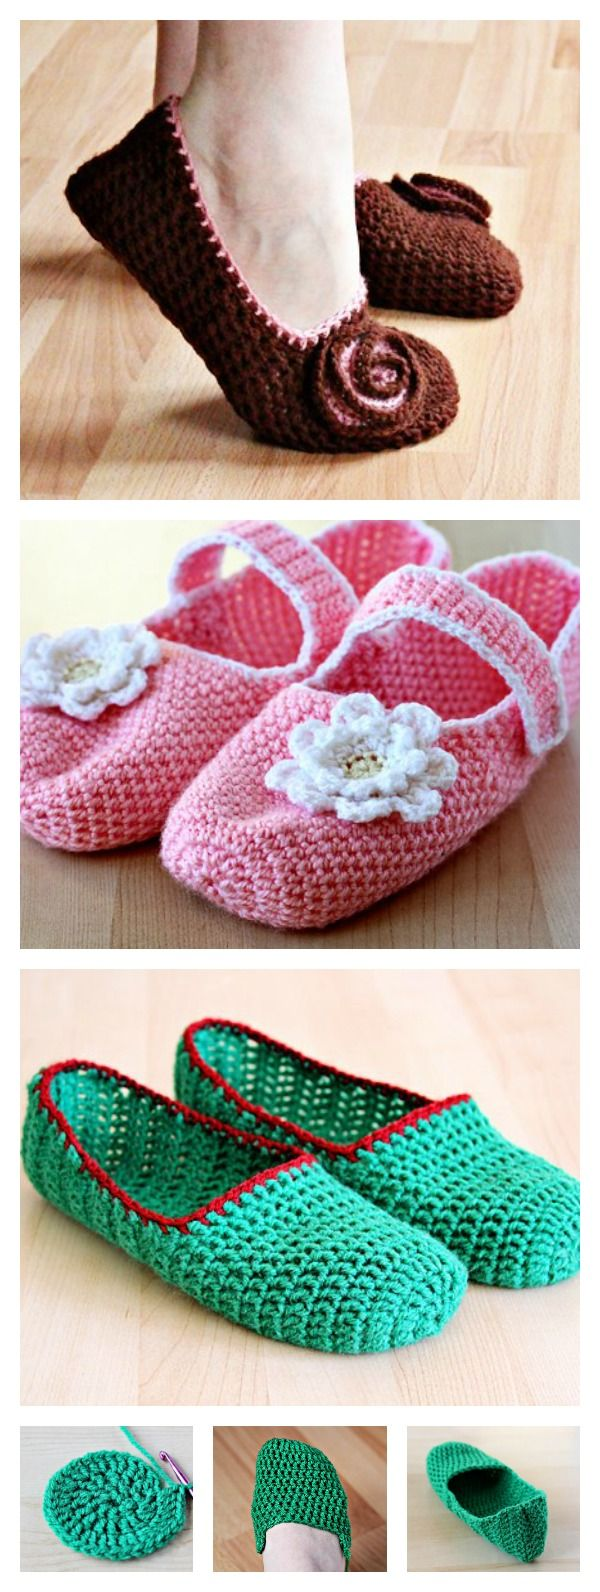 219 best crochet projects slipper n shoes boot cuffs images on simple crochet slippers free pattern bankloansurffo Images